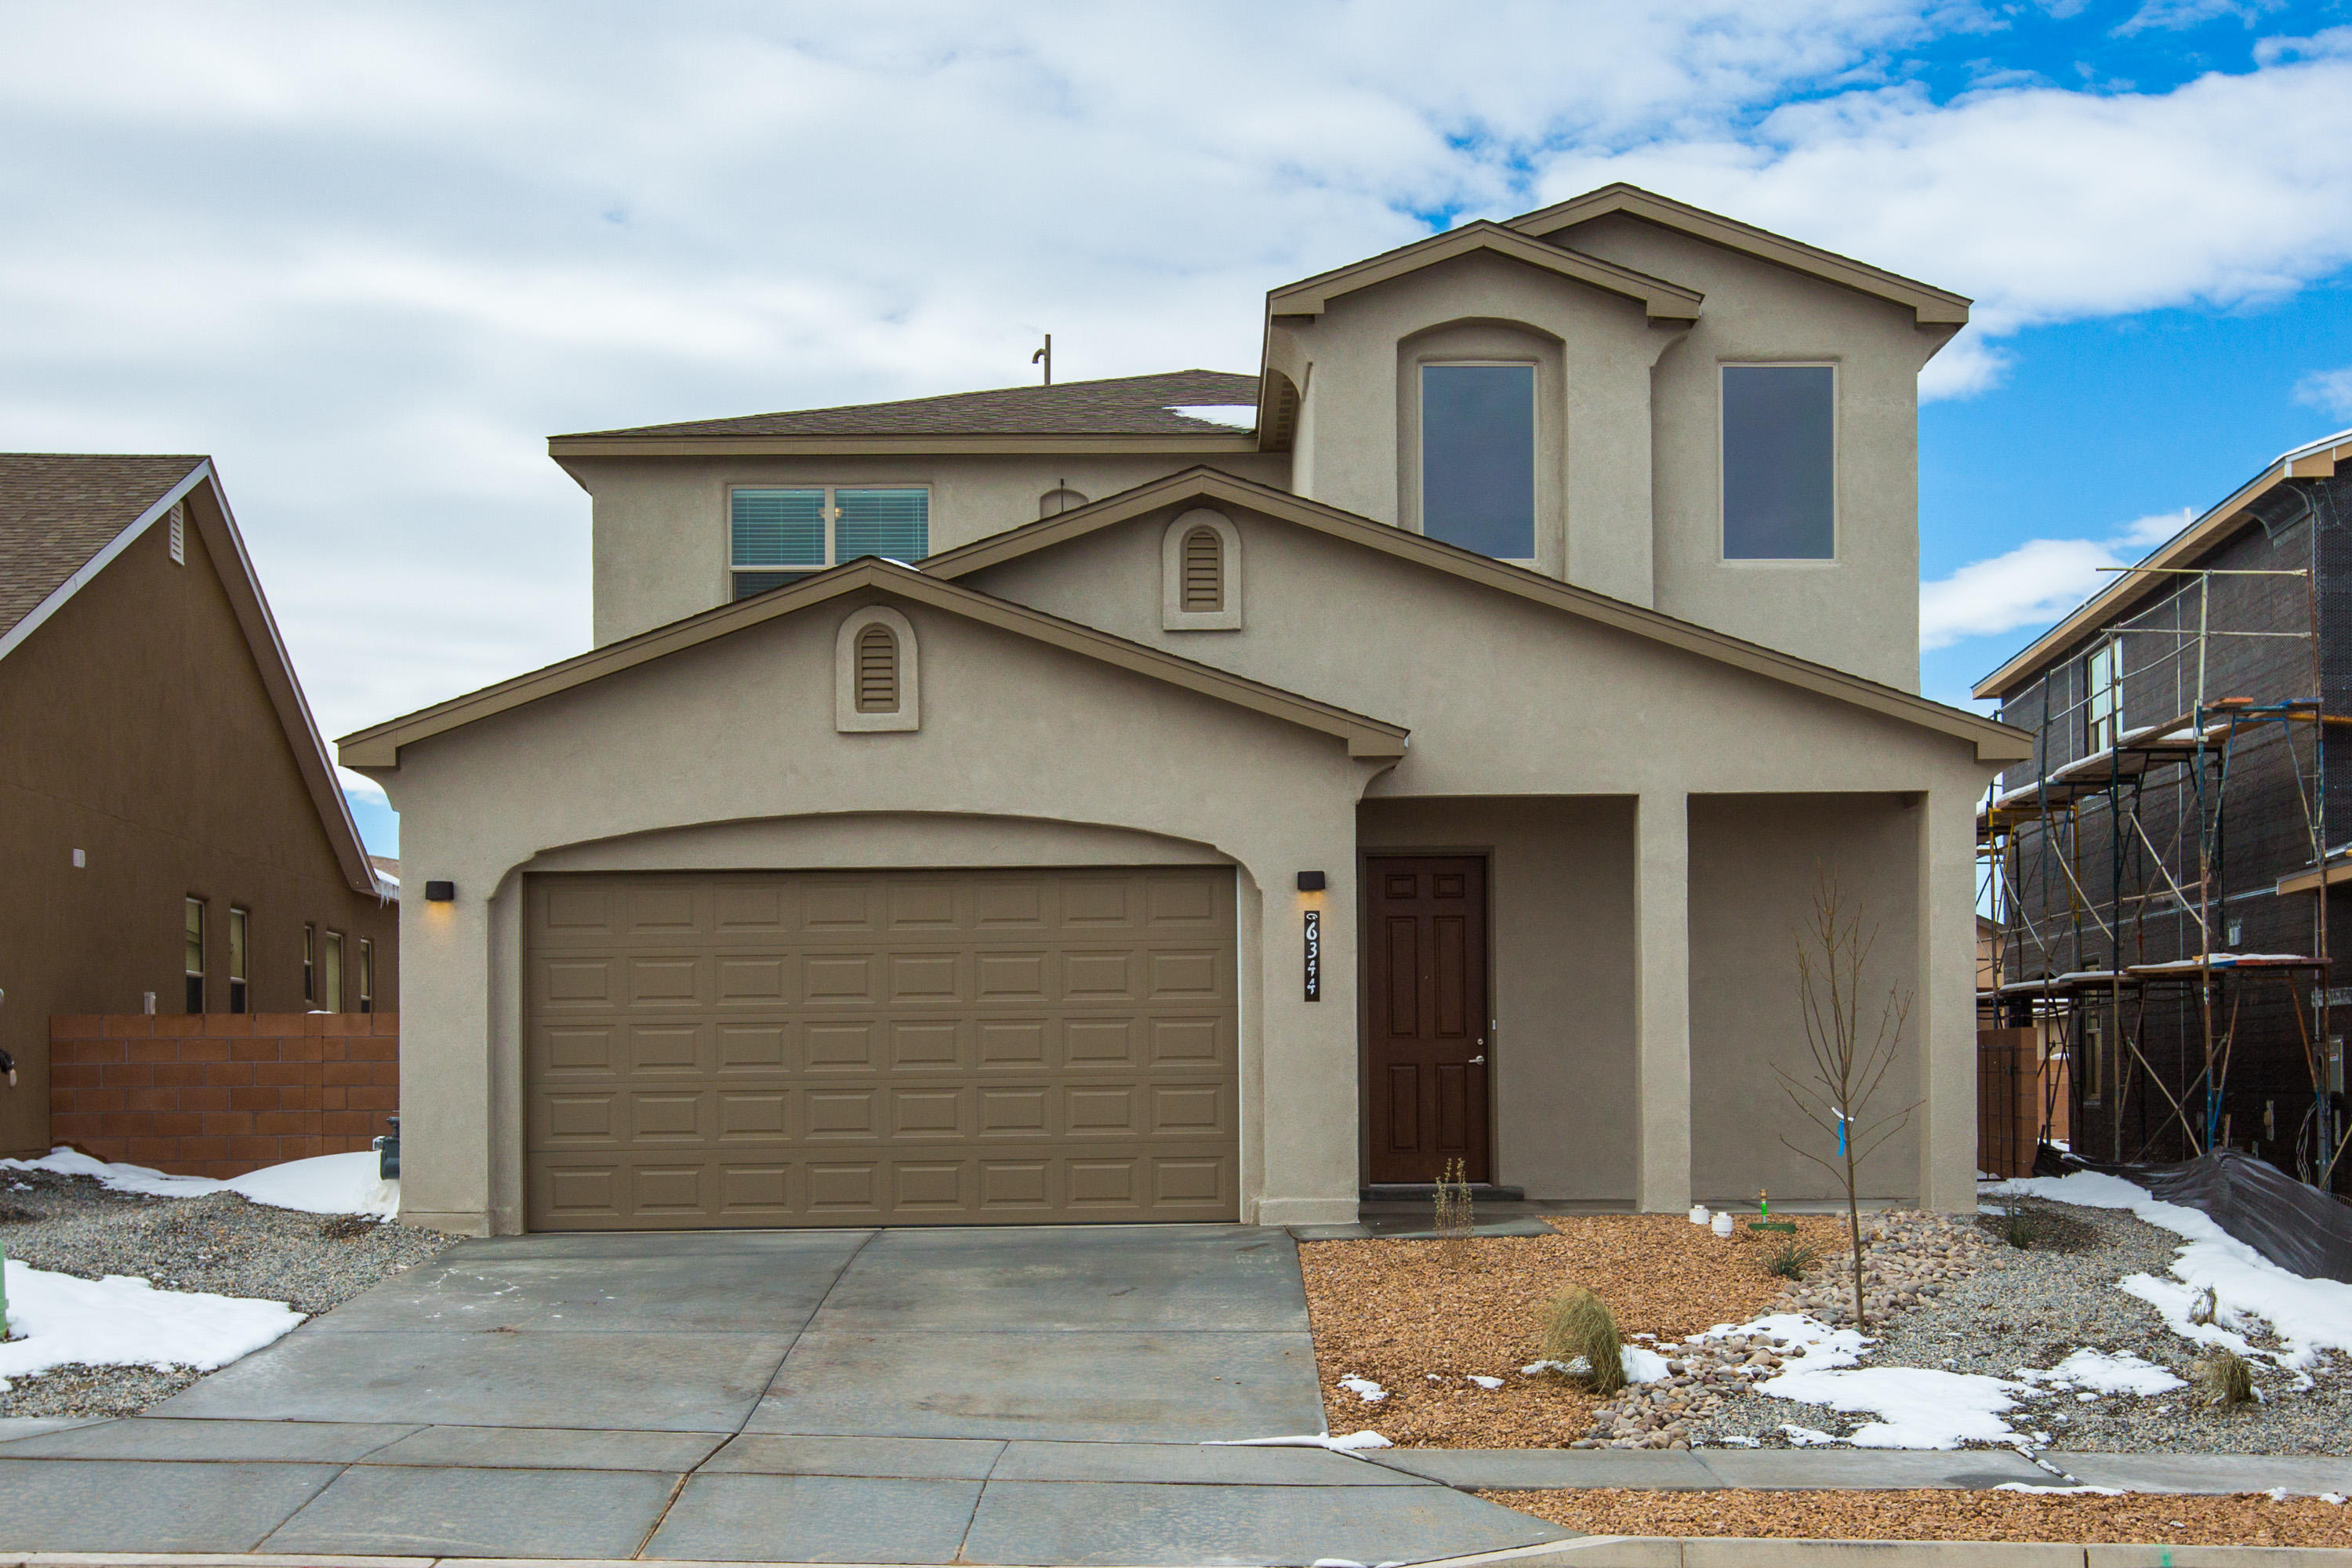 11413 MANZANO VISTA Avenue SE Property Photo - Albuquerque, NM real estate listing